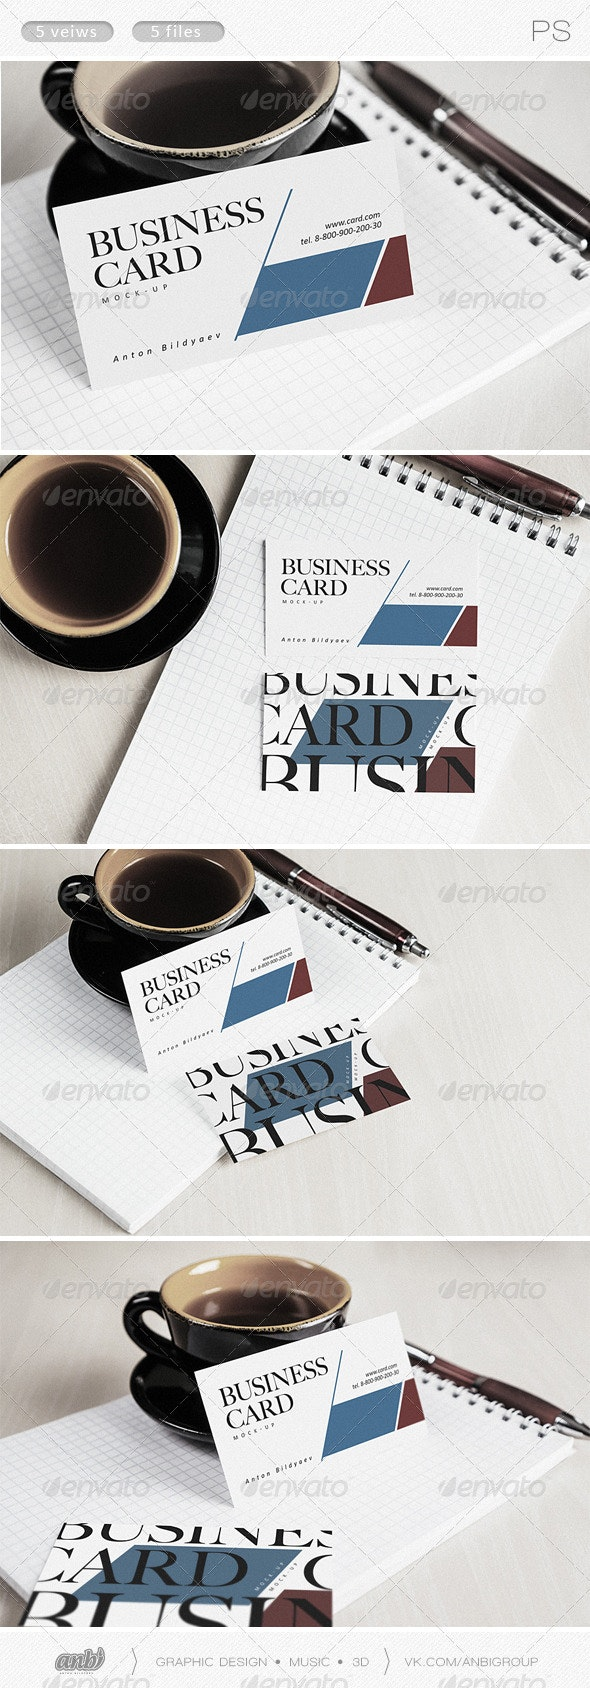 Business Card Mock-Up II - Business Cards Print